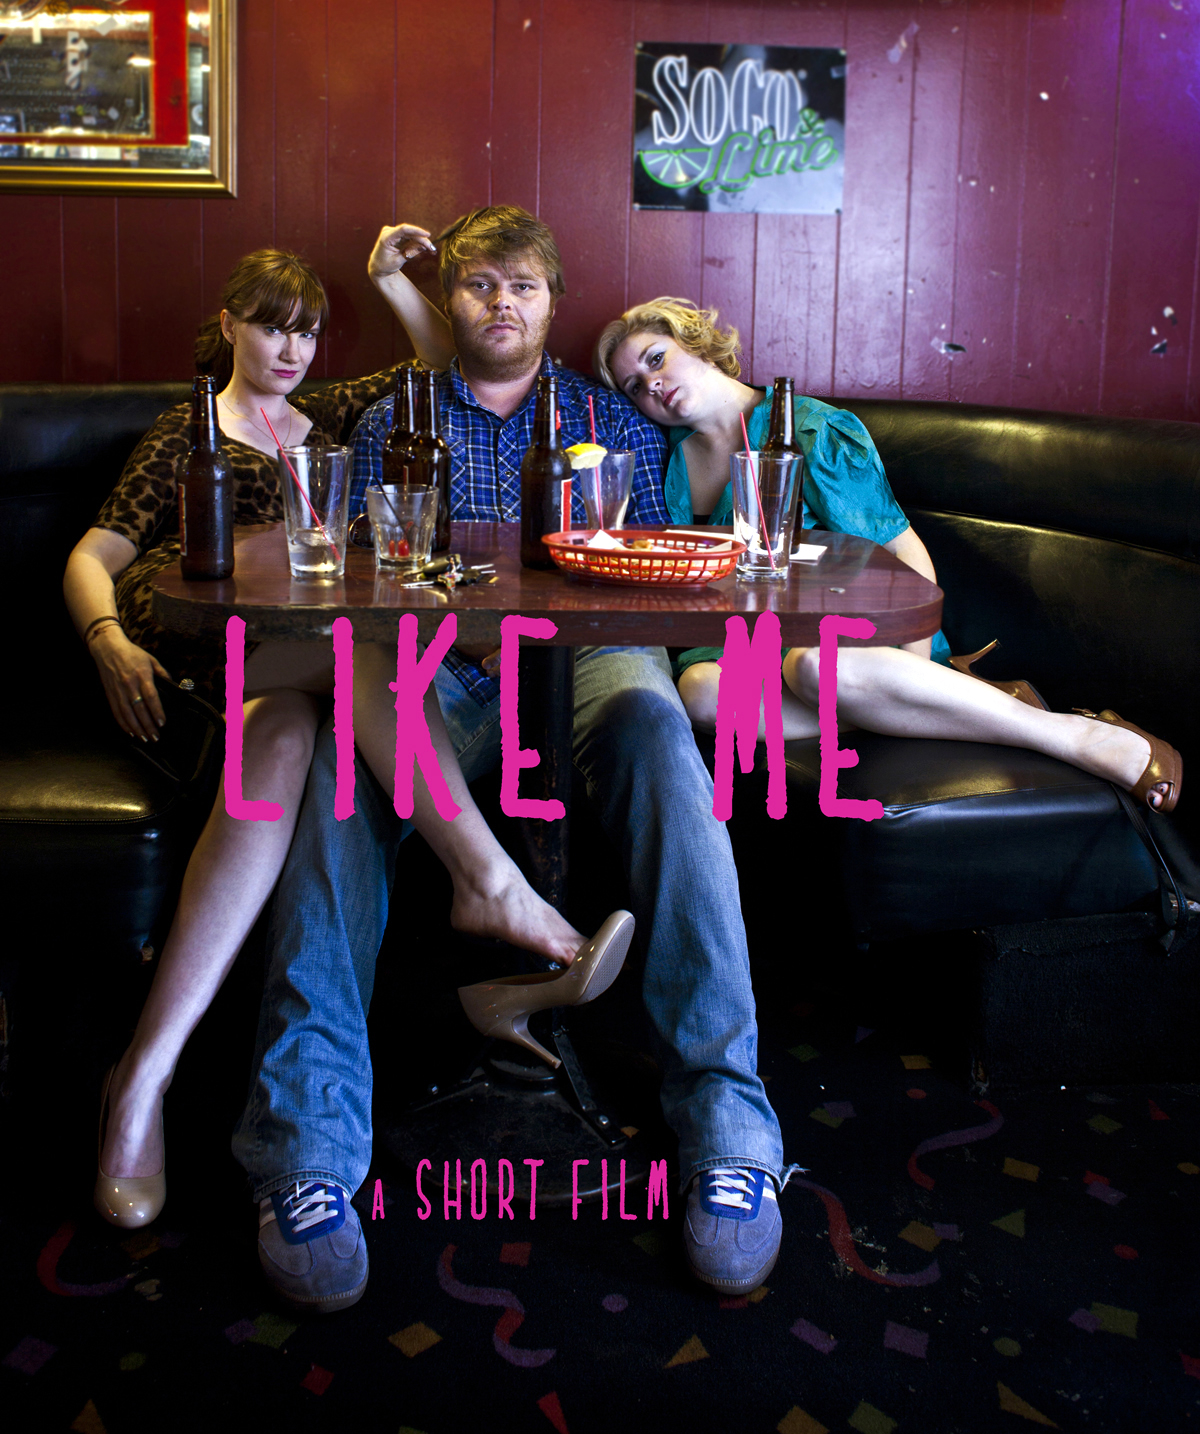 Short Film Like Me  Written, Directed by May Charters, Lindsay Stidham